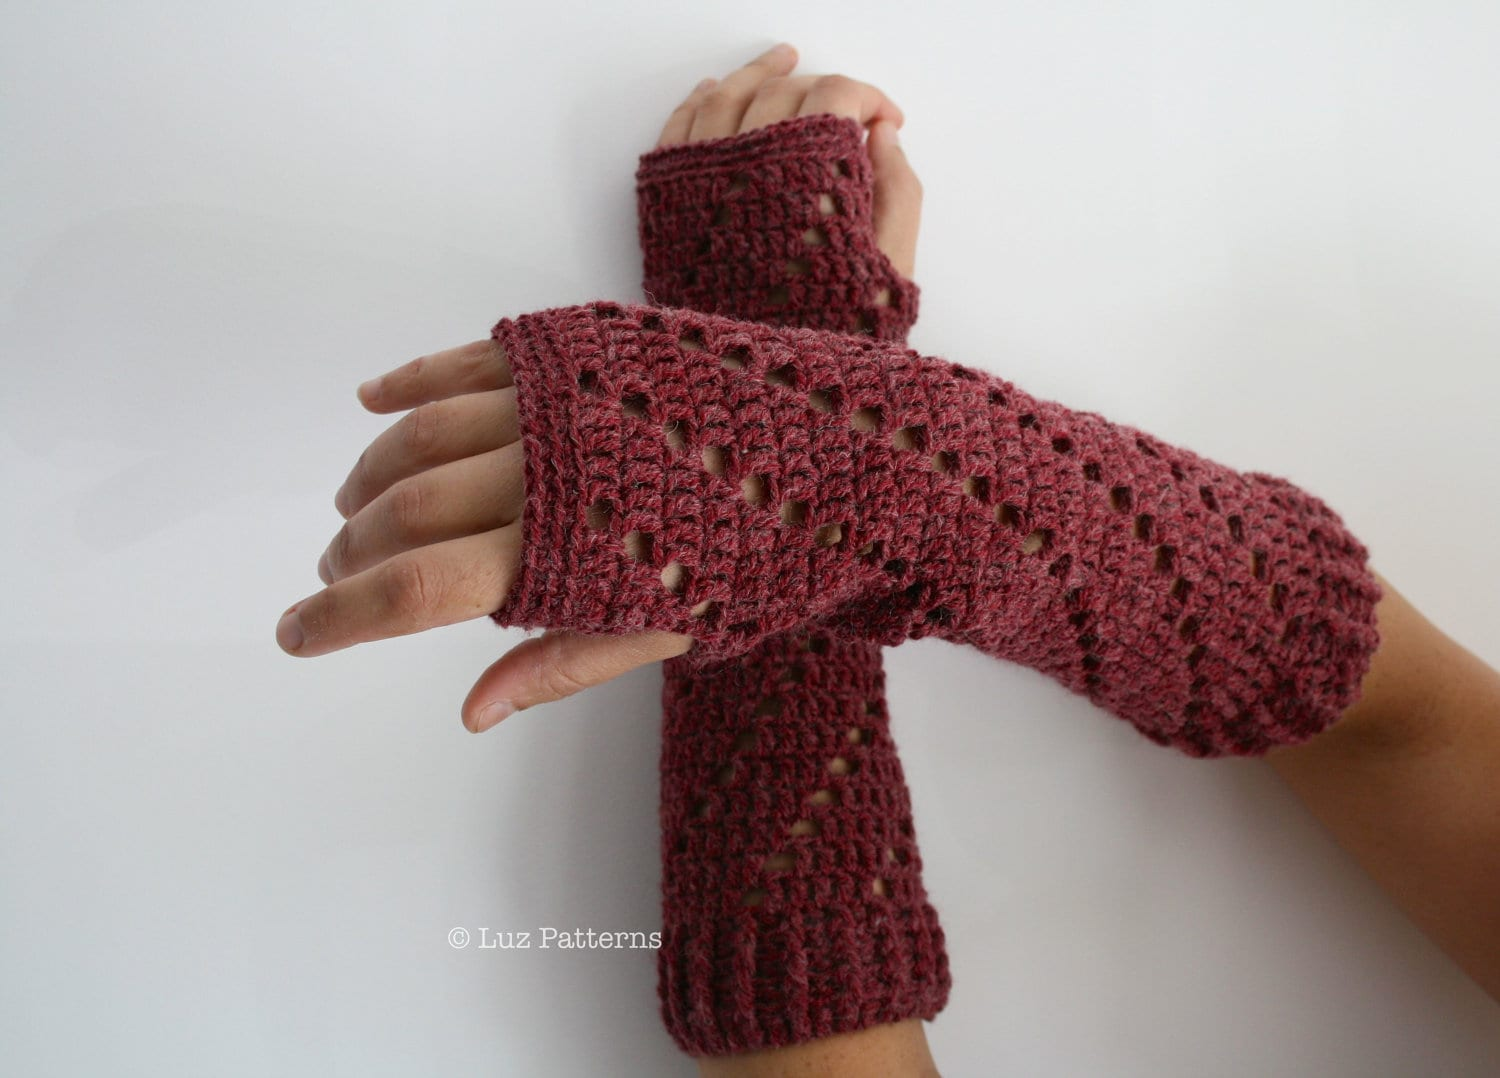 Crochet Patterns Arm Warmers : Crochet patterns girl and women arm warmer pattern by LuzPatterns